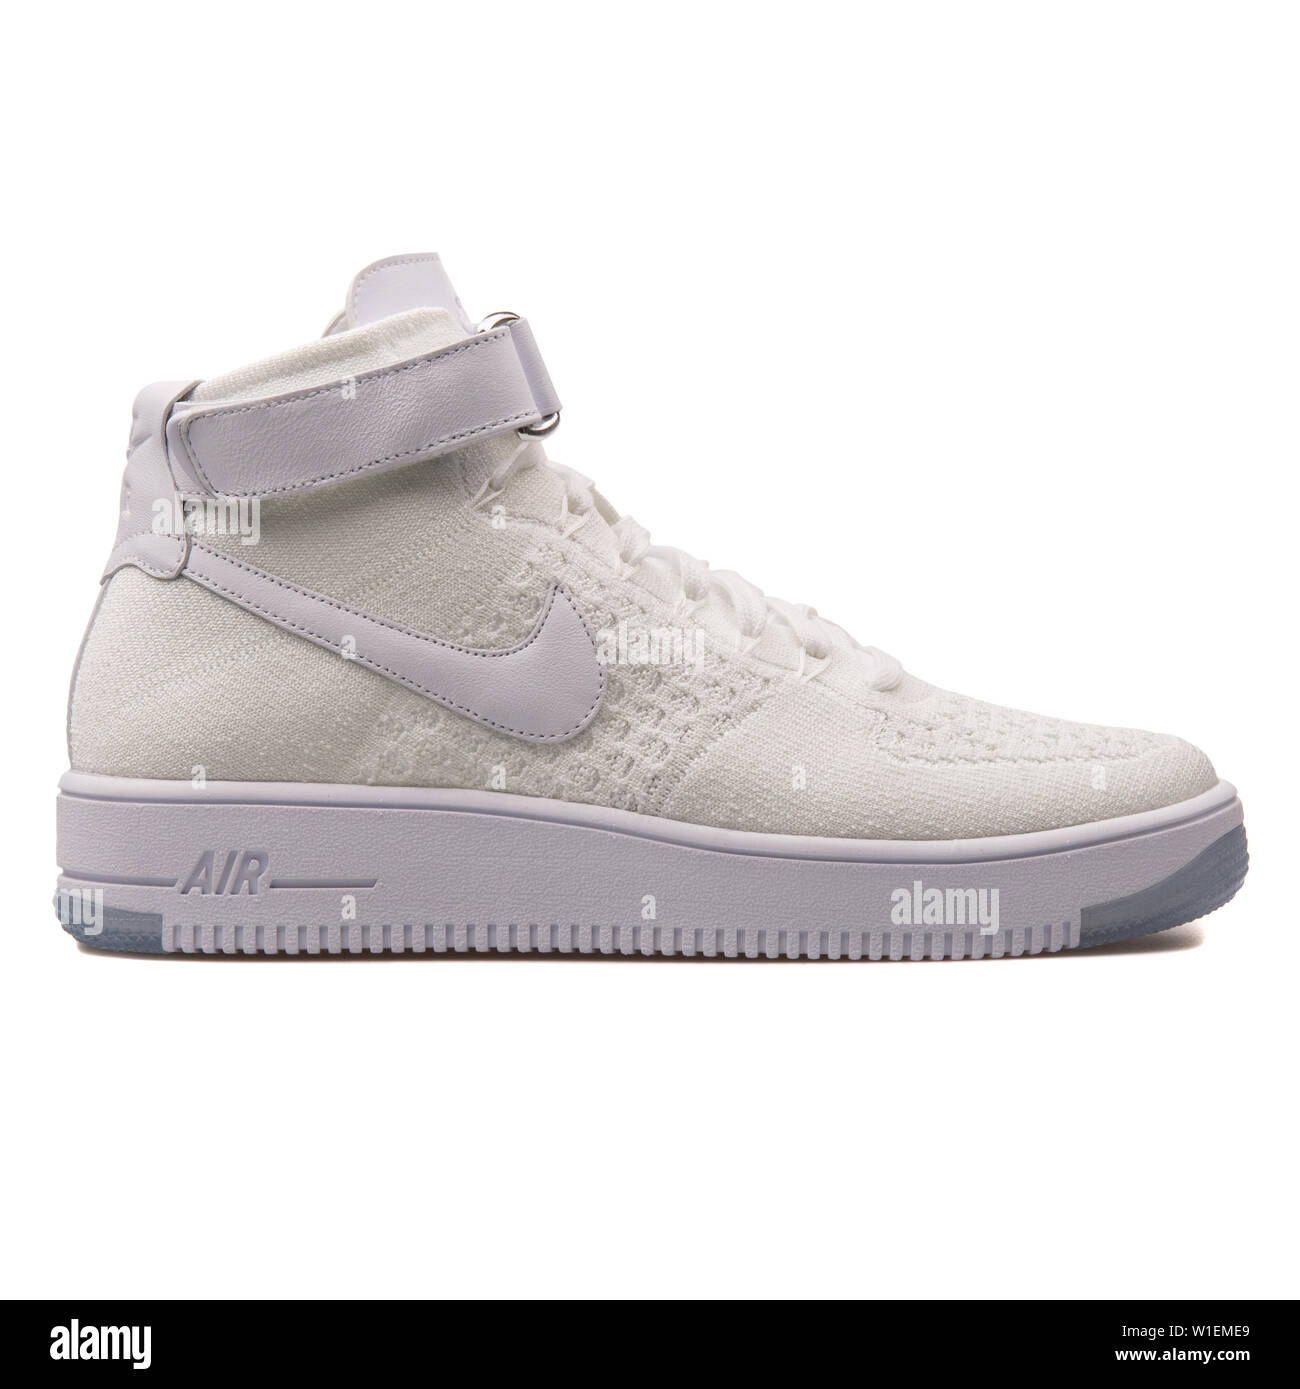 on sale 95677 cf9ca VIENNA, AUSTRIA - AUGUST 30, 2017: Nike Air Force 1 Ultra ...